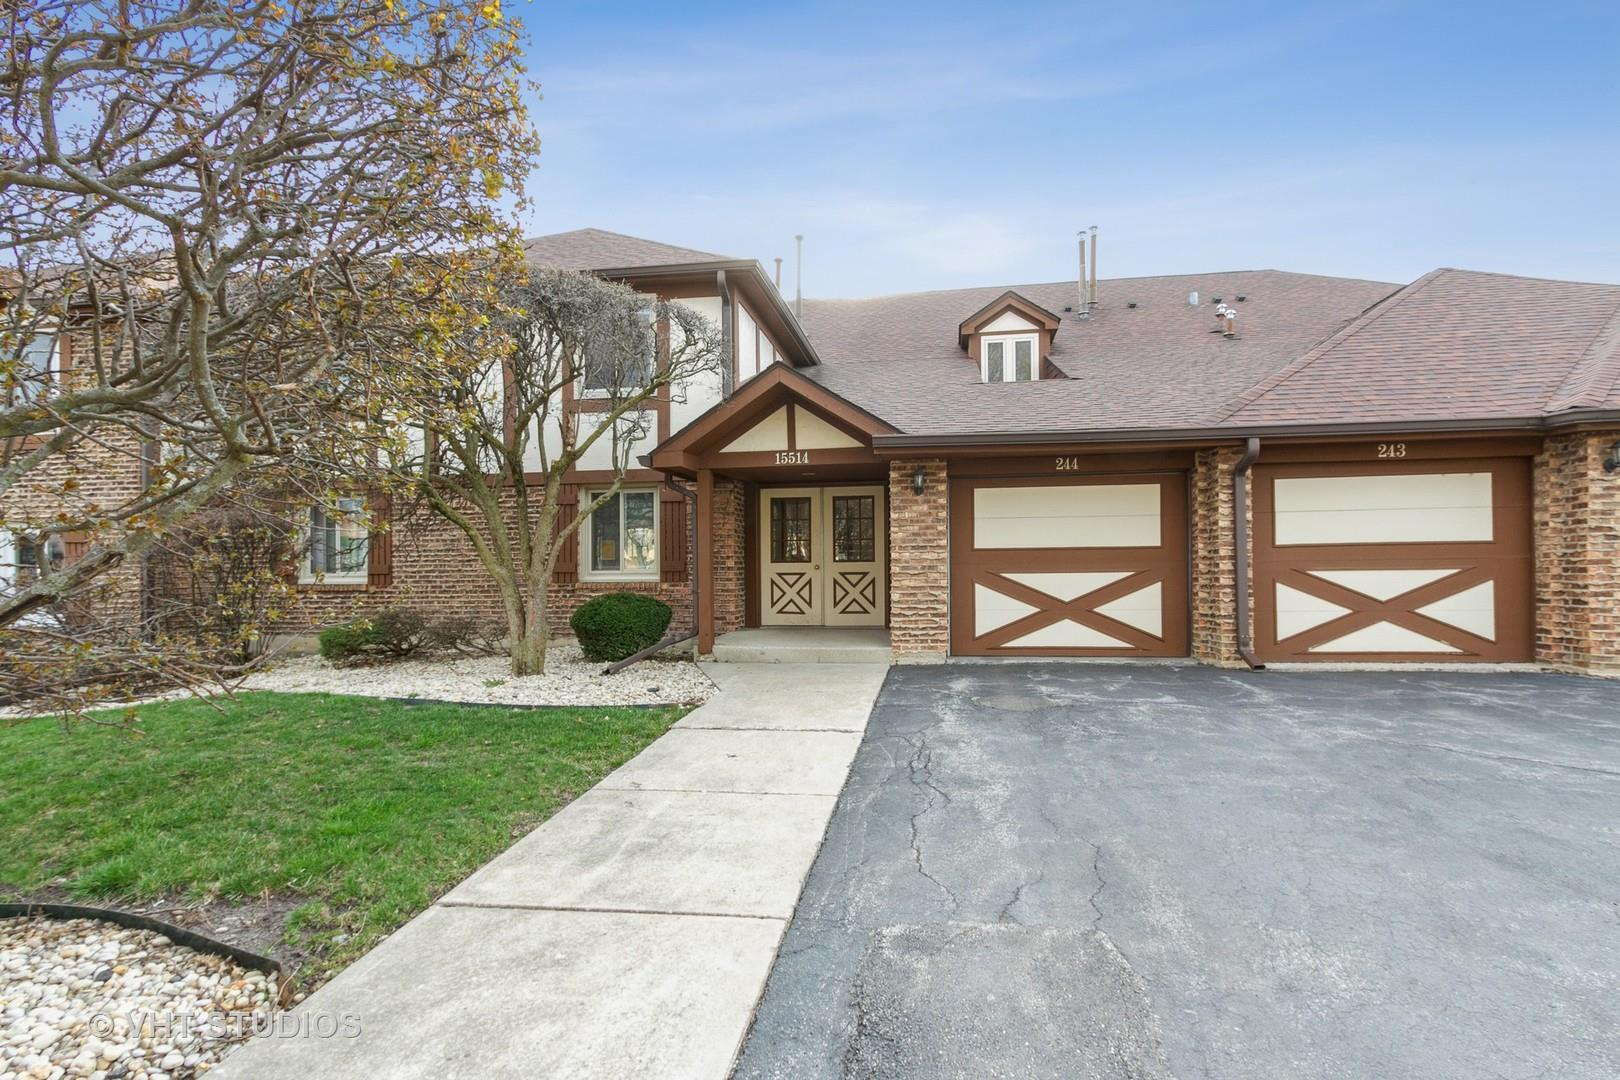 15514 Orlan Brook Drive #243, Orland Park, IL 60462 - #: 11053209